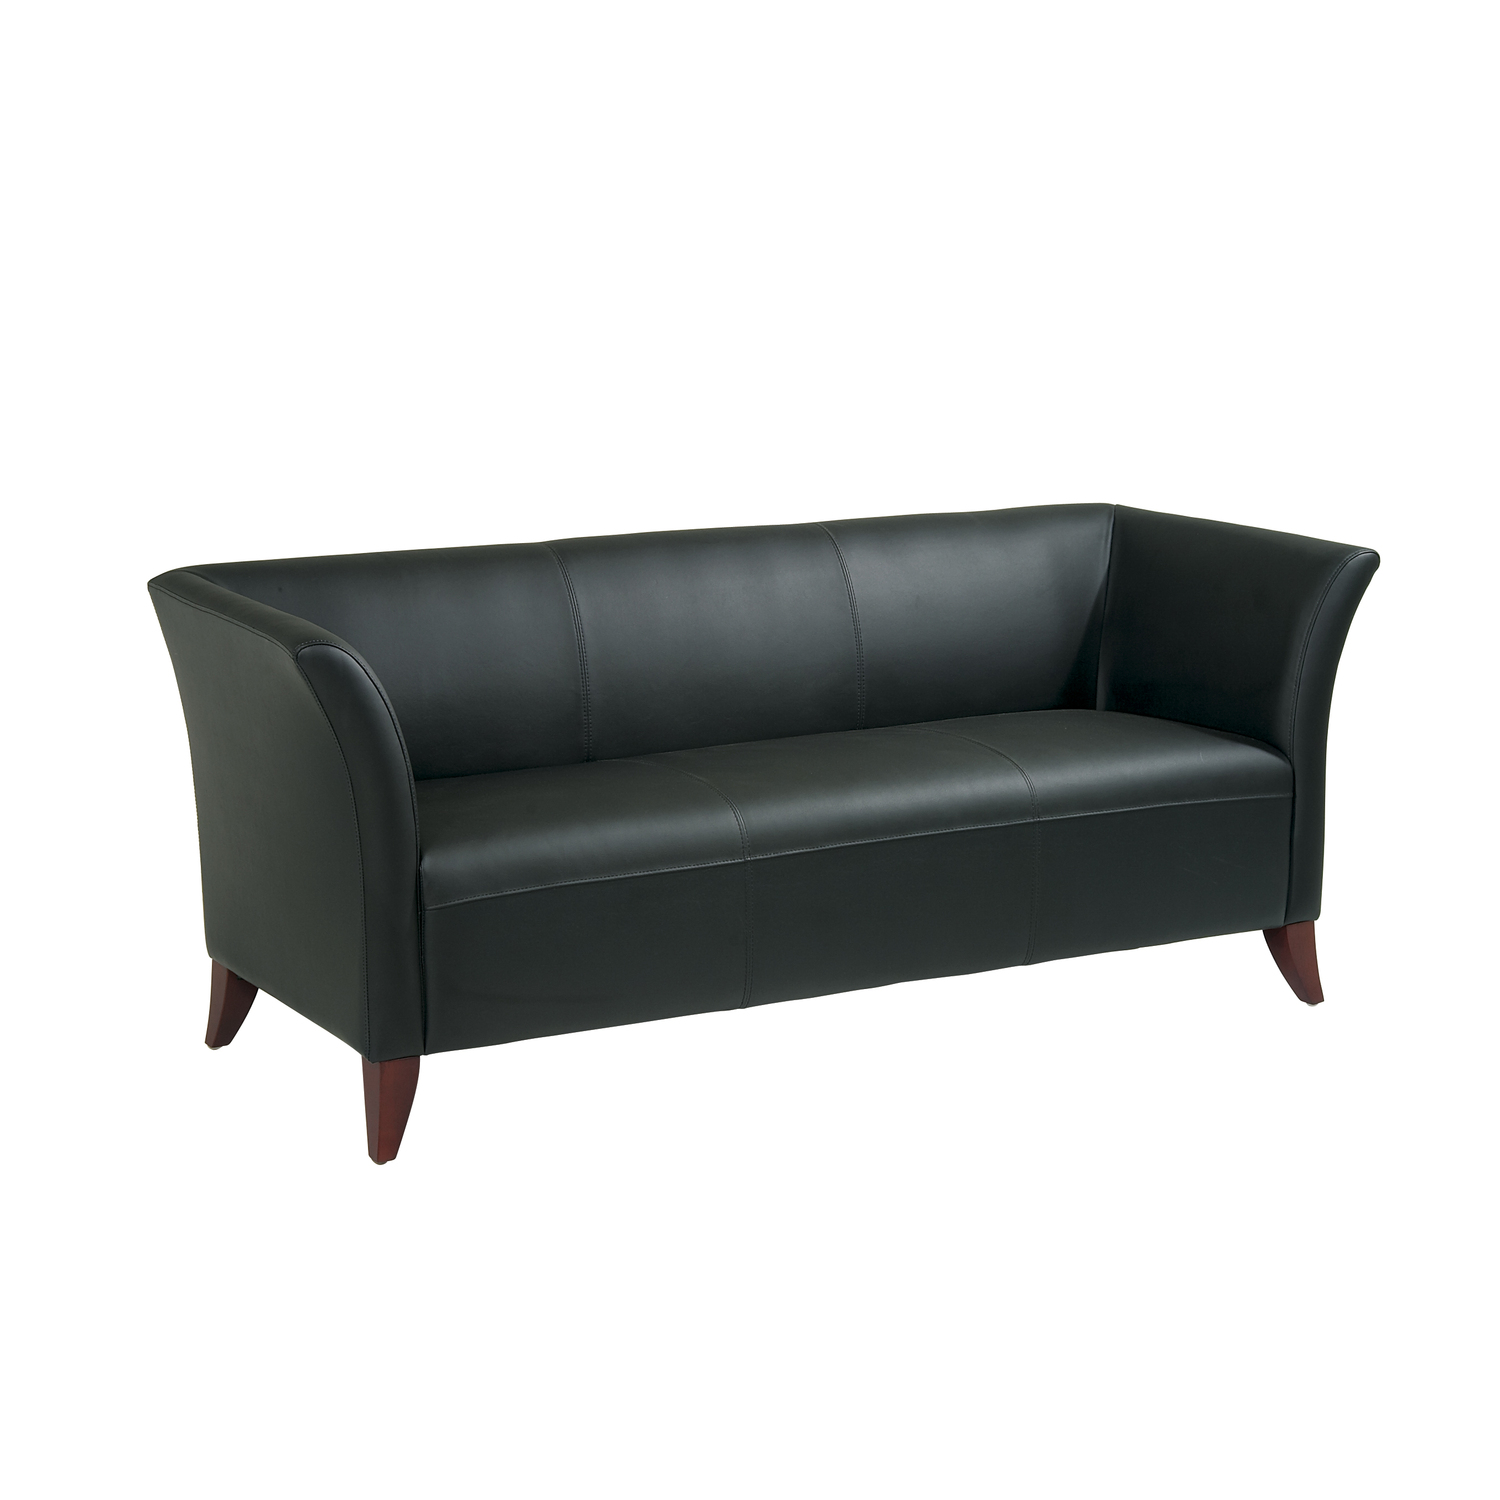 Office star leather sofa ojcommerce for Furniture sofas and couches